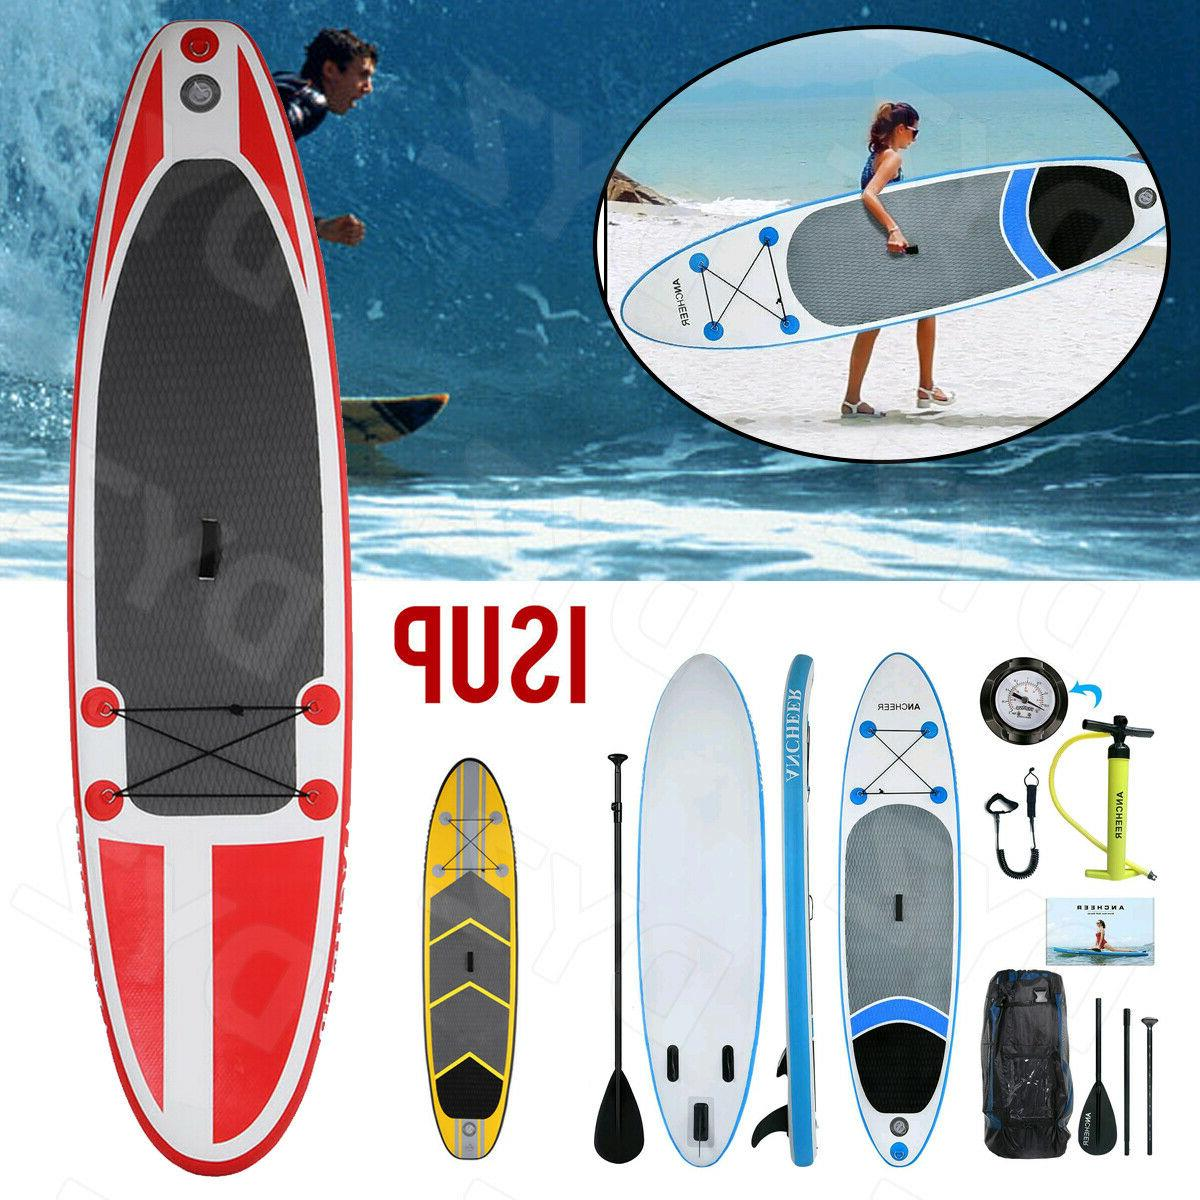 10ft Inflatable Stand Up Paddle Board iSUP with Adjustable P